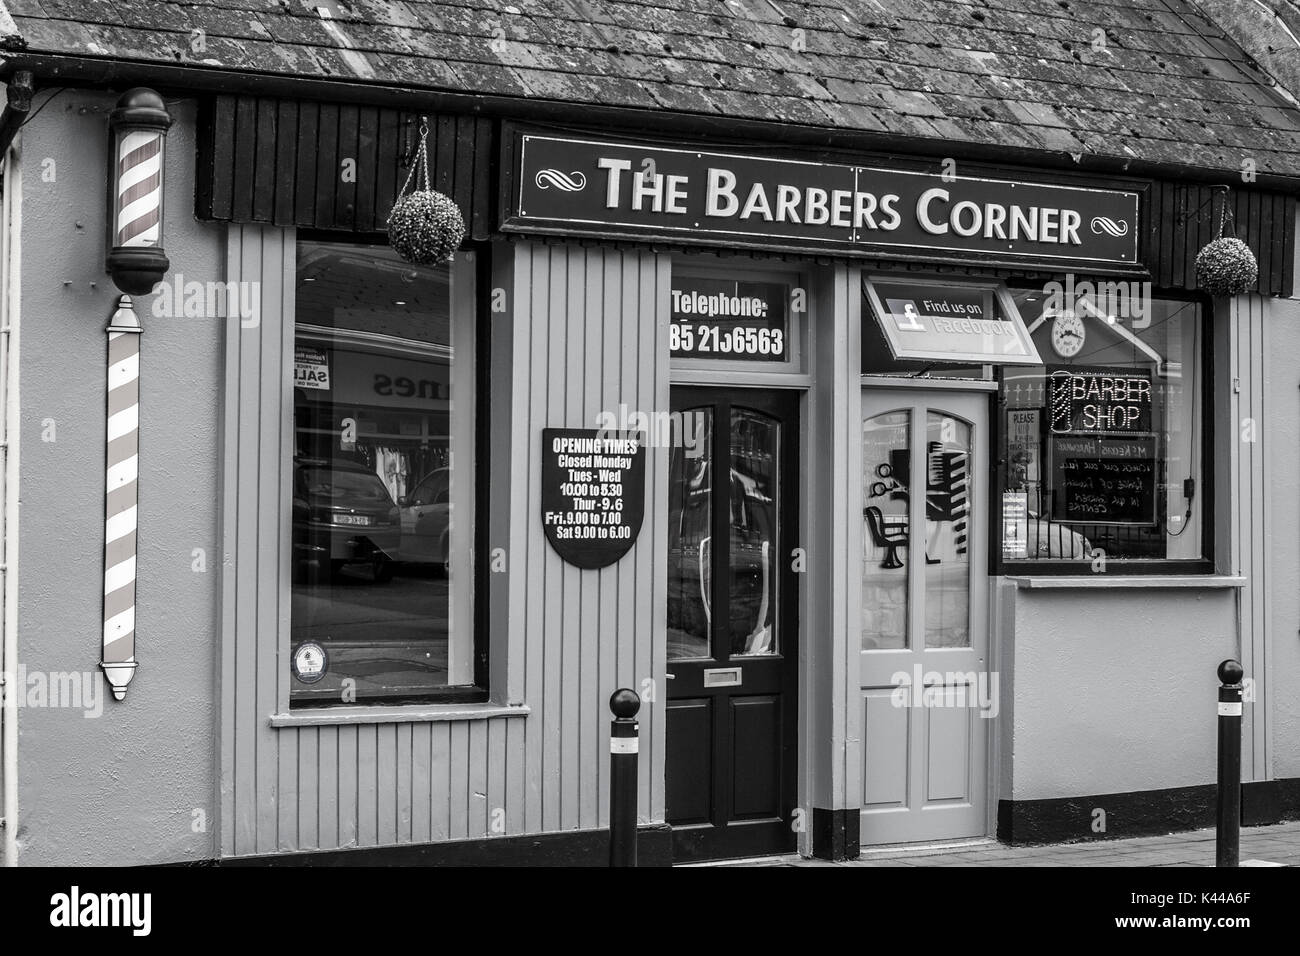 Barber Shop Front with Red and White Pole in Co.Clare Ireland in black and white - Stock Image